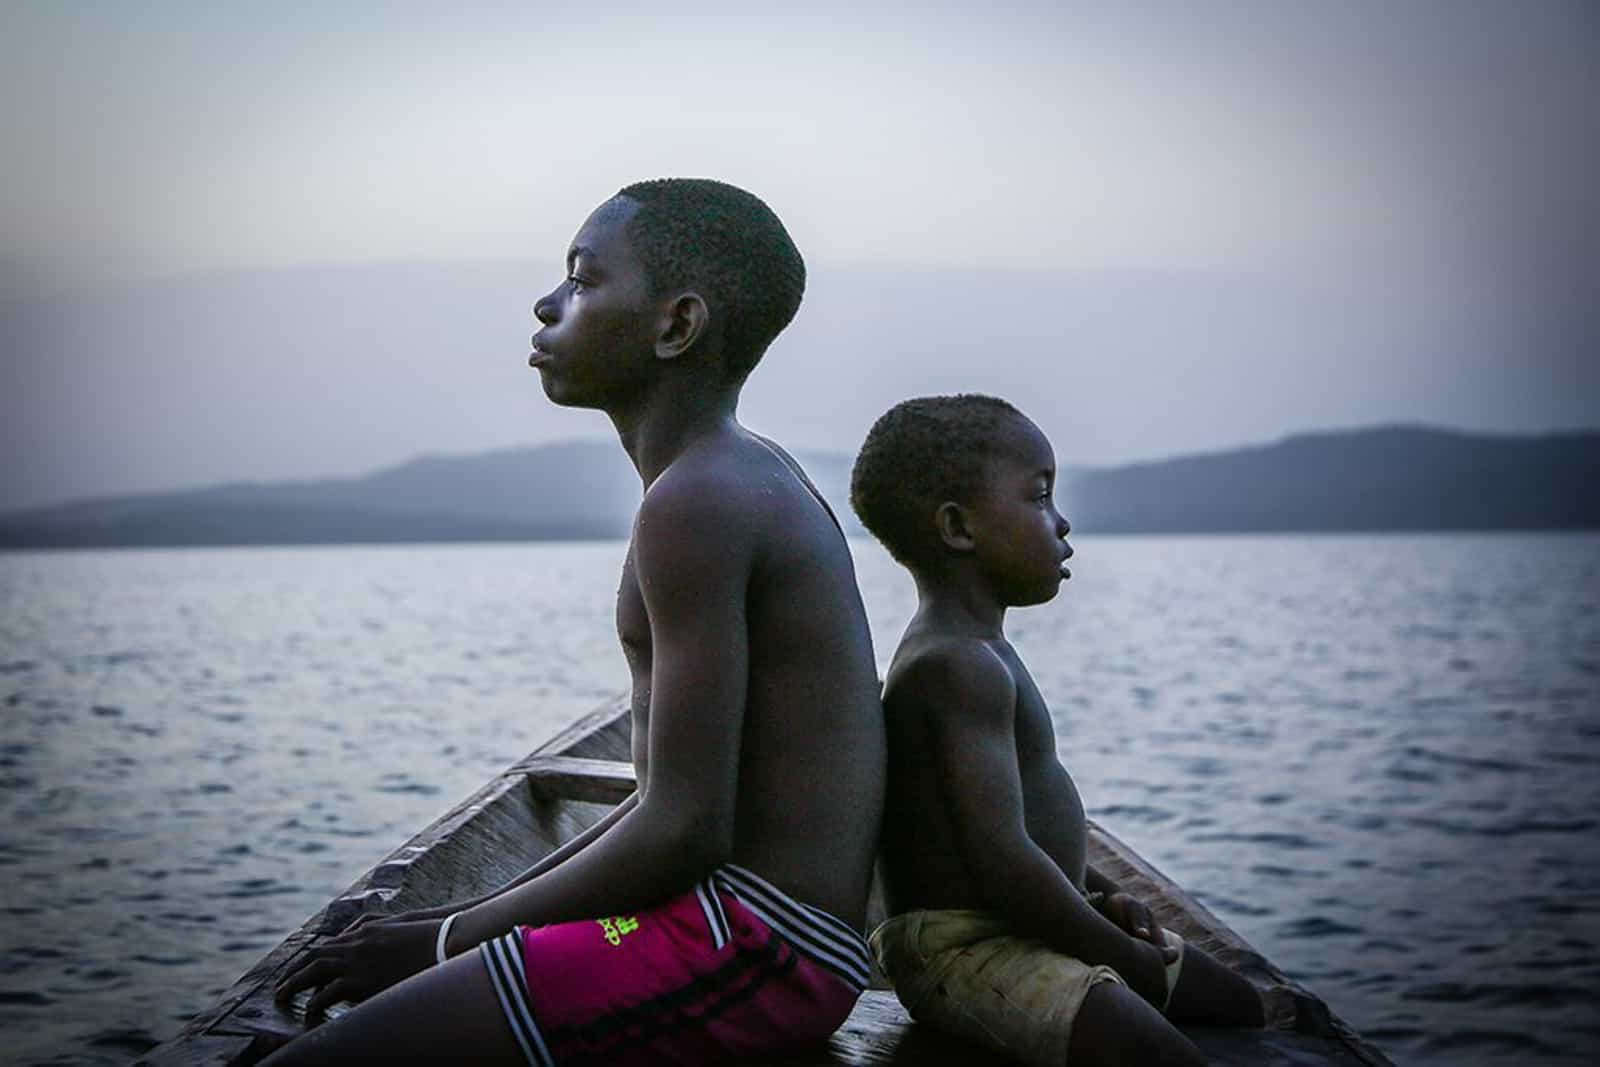 A teenage boy and a young boy sit back to back on a wooden boat floating on a lake